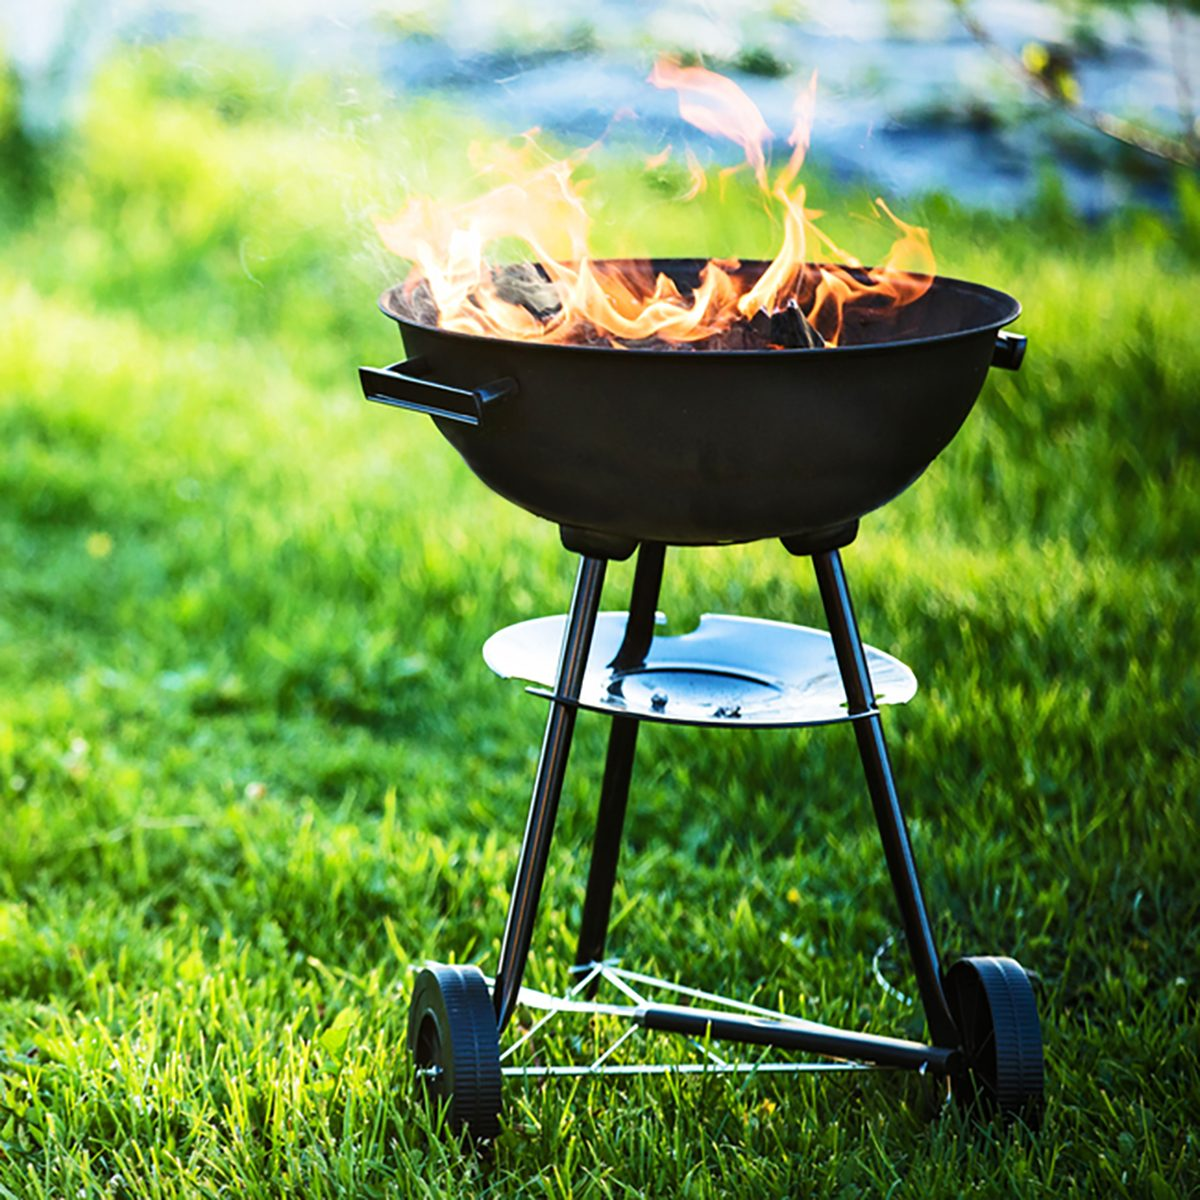 Barbecue grill with fire on nature,